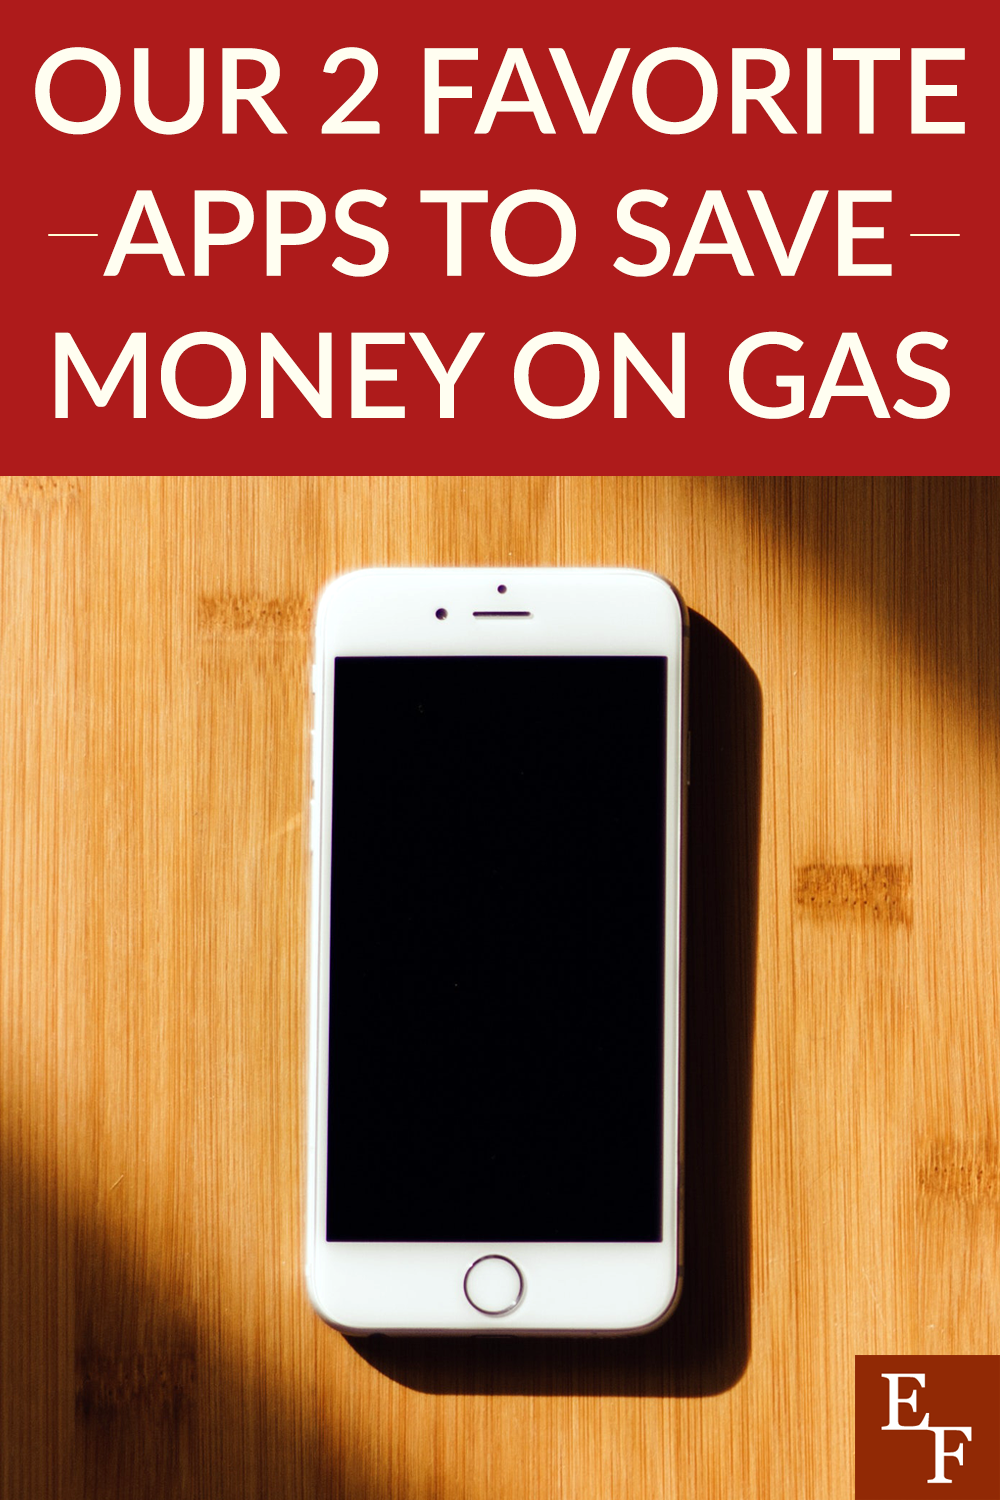 For those of us who have to drive on a regular basis, gas can get pretty darn expensive. So here are 2 of our favorite apps to save money on gas.